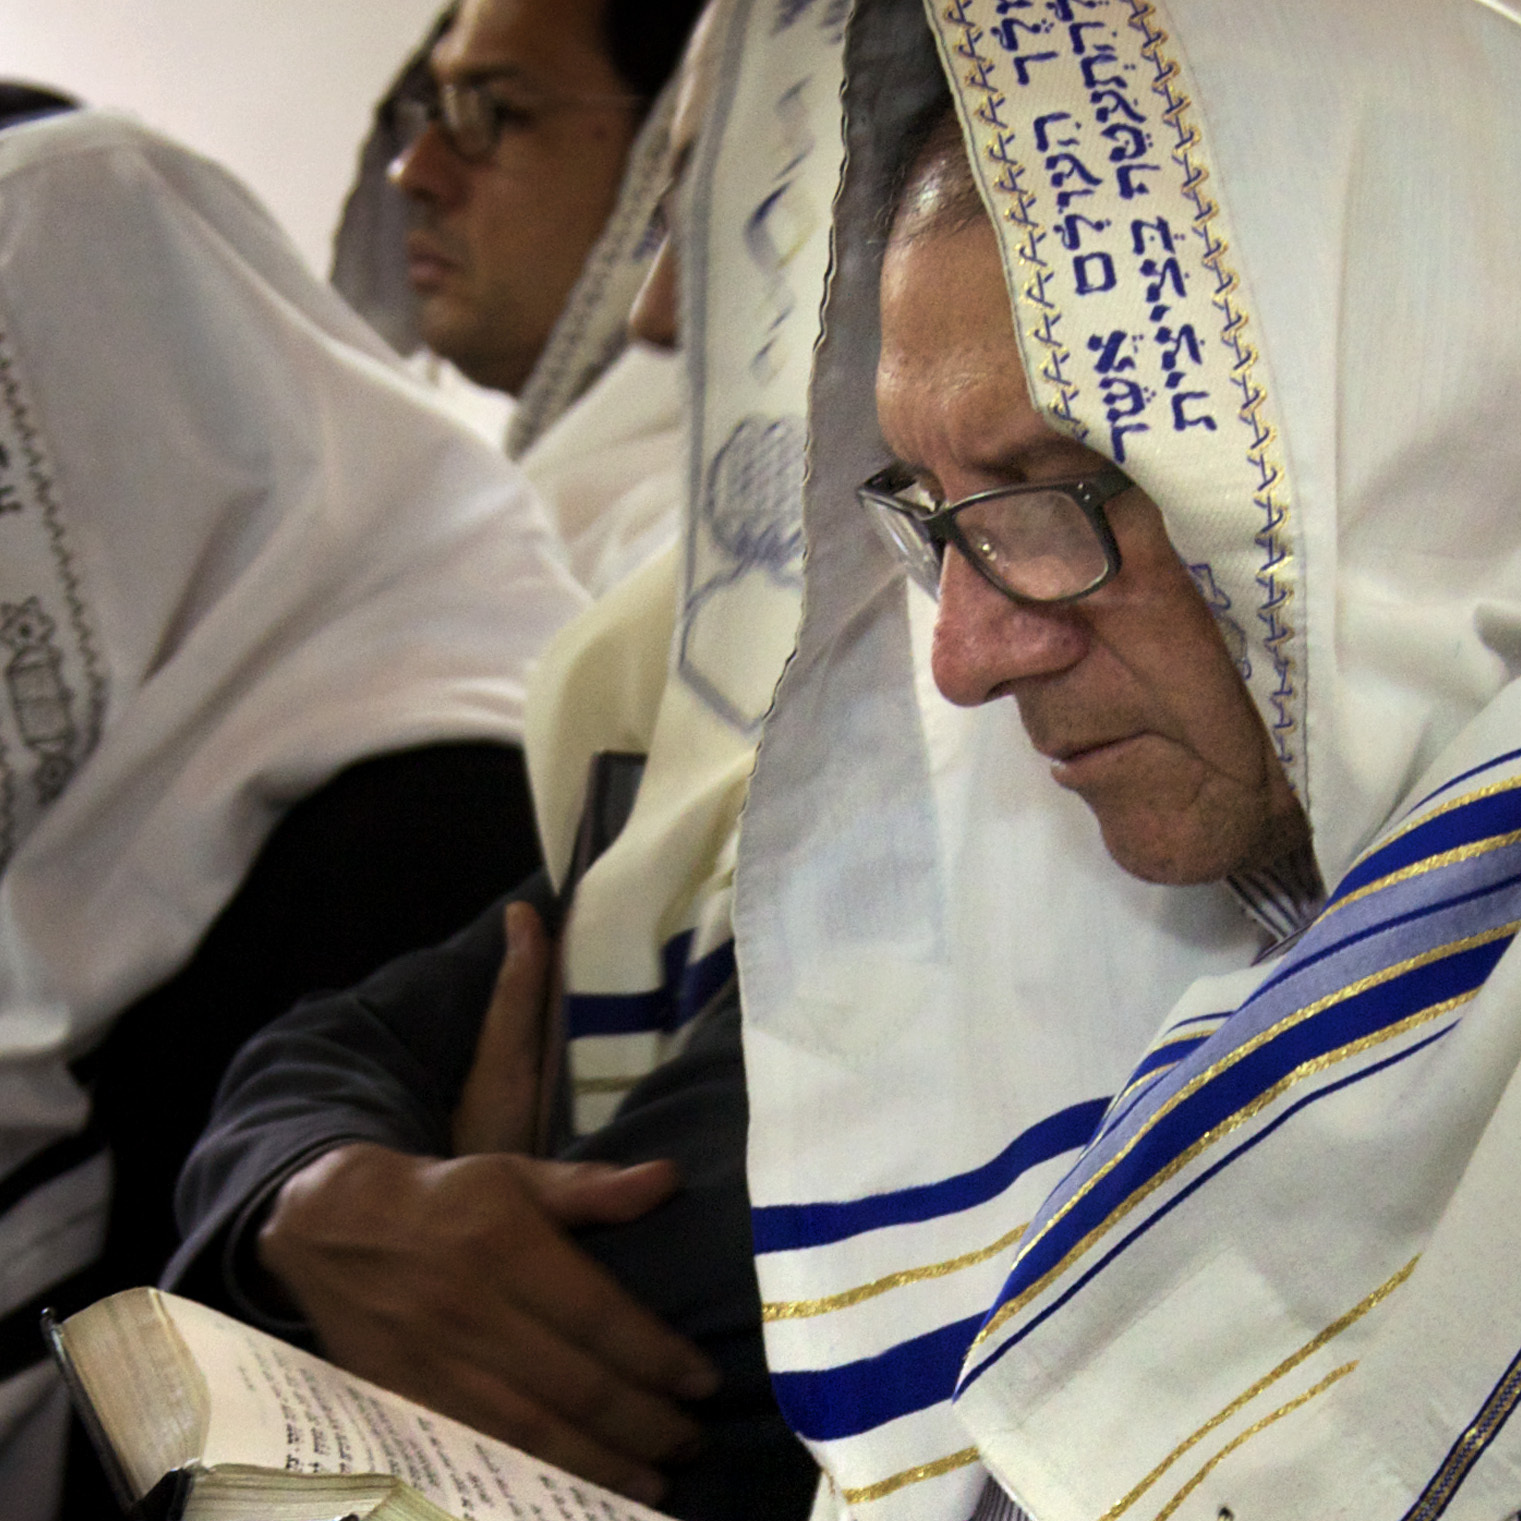 A man worships at the synagogue in Bello using a prayer book, the Siddur Birkat Shelomo, in which Spanish, Hebrew and phonetic versions are offered.